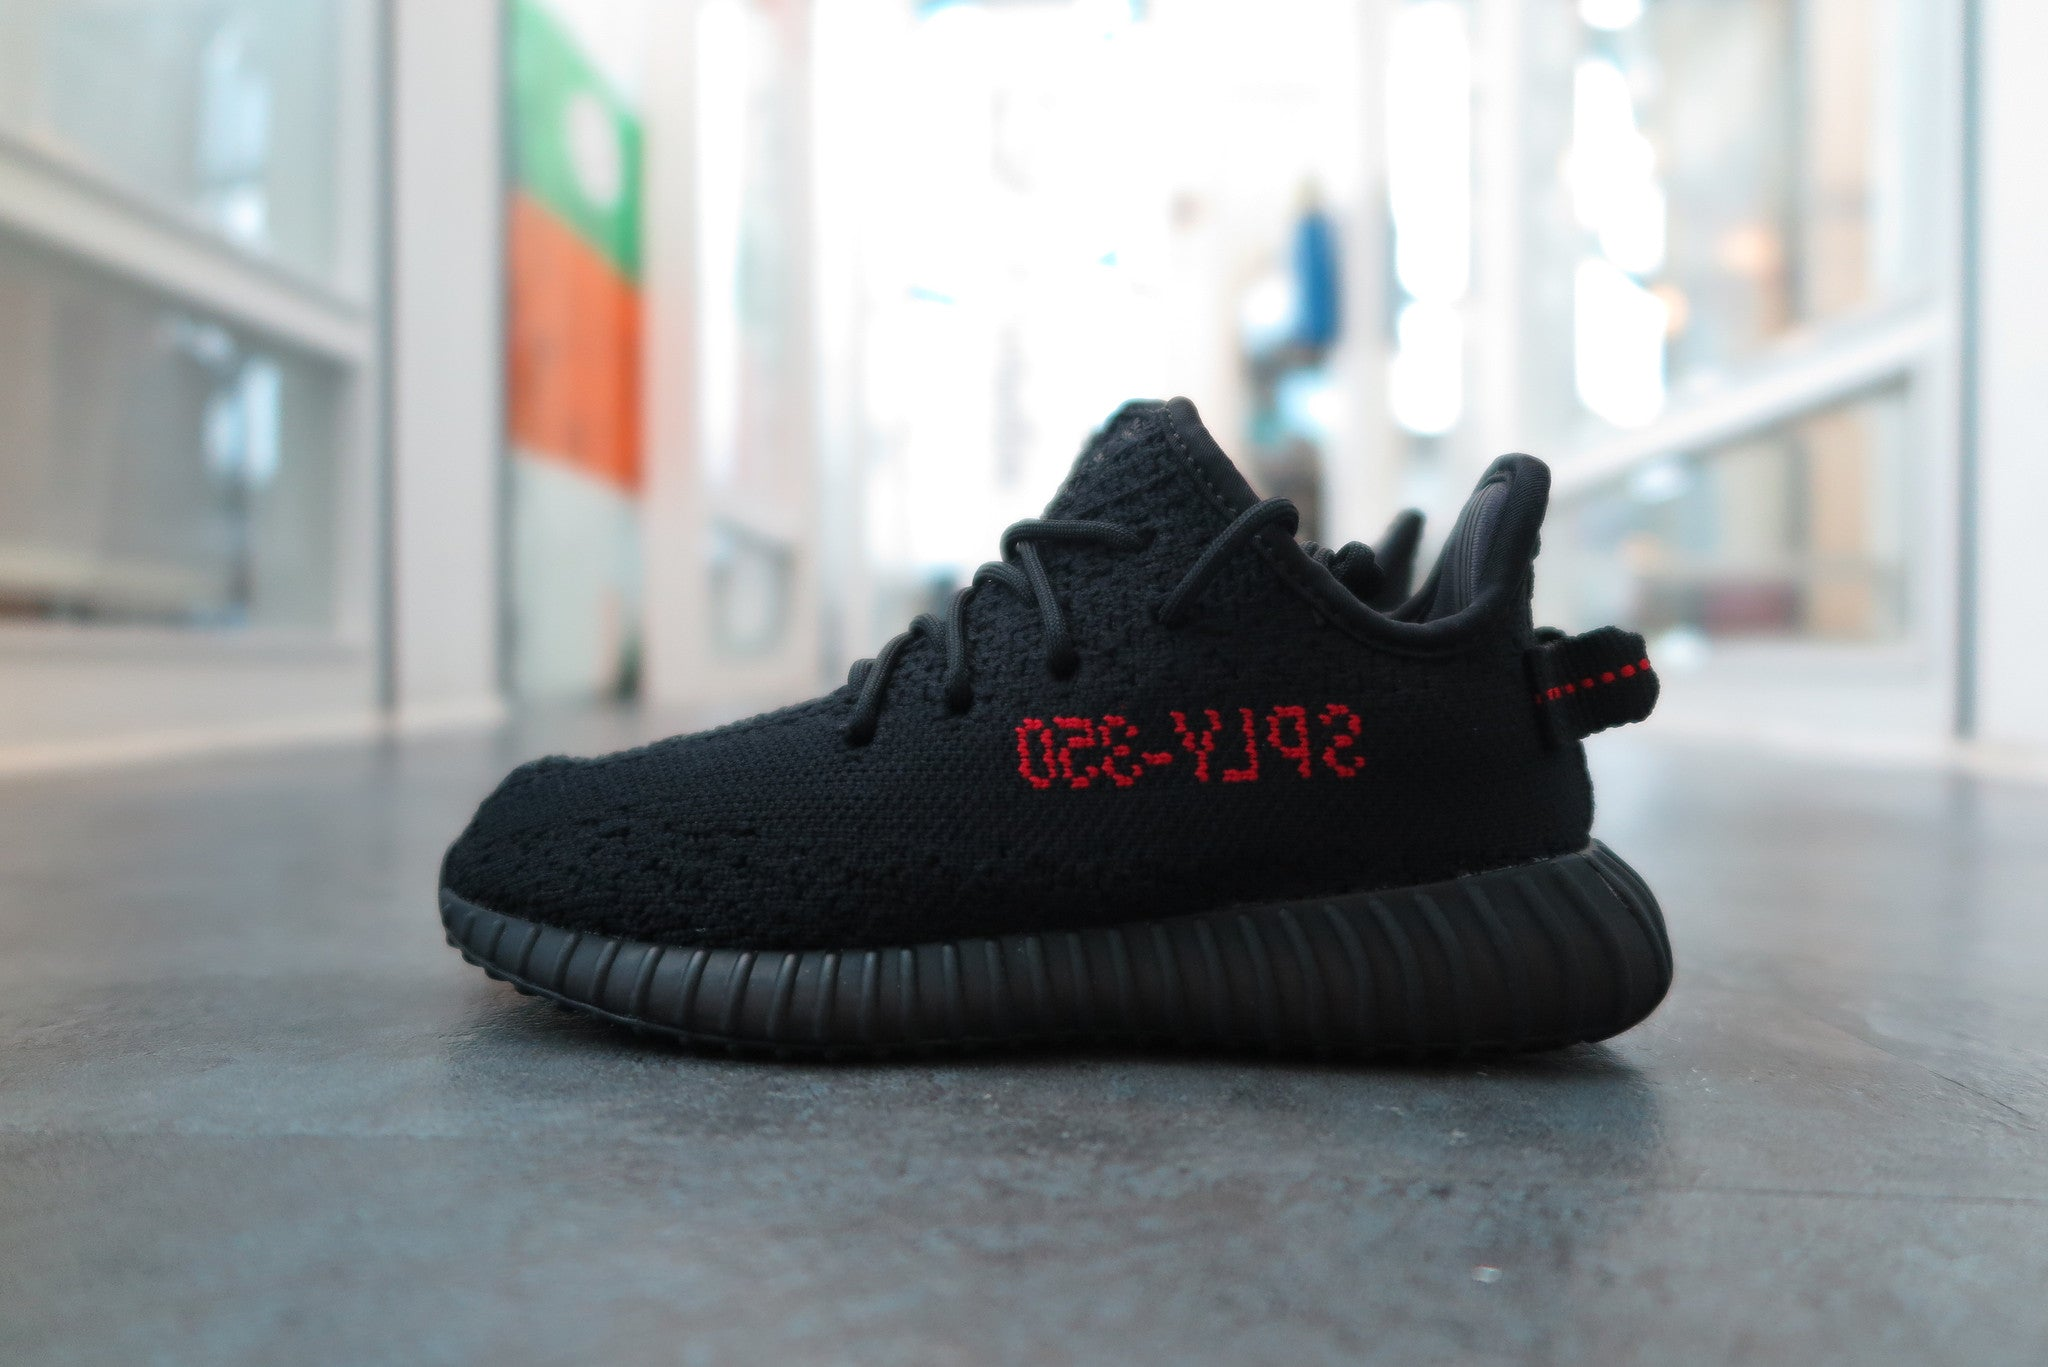 Adidas [FDOF] Adidas Yeezy Boost 350 V2 Infant BB6372 Black Label